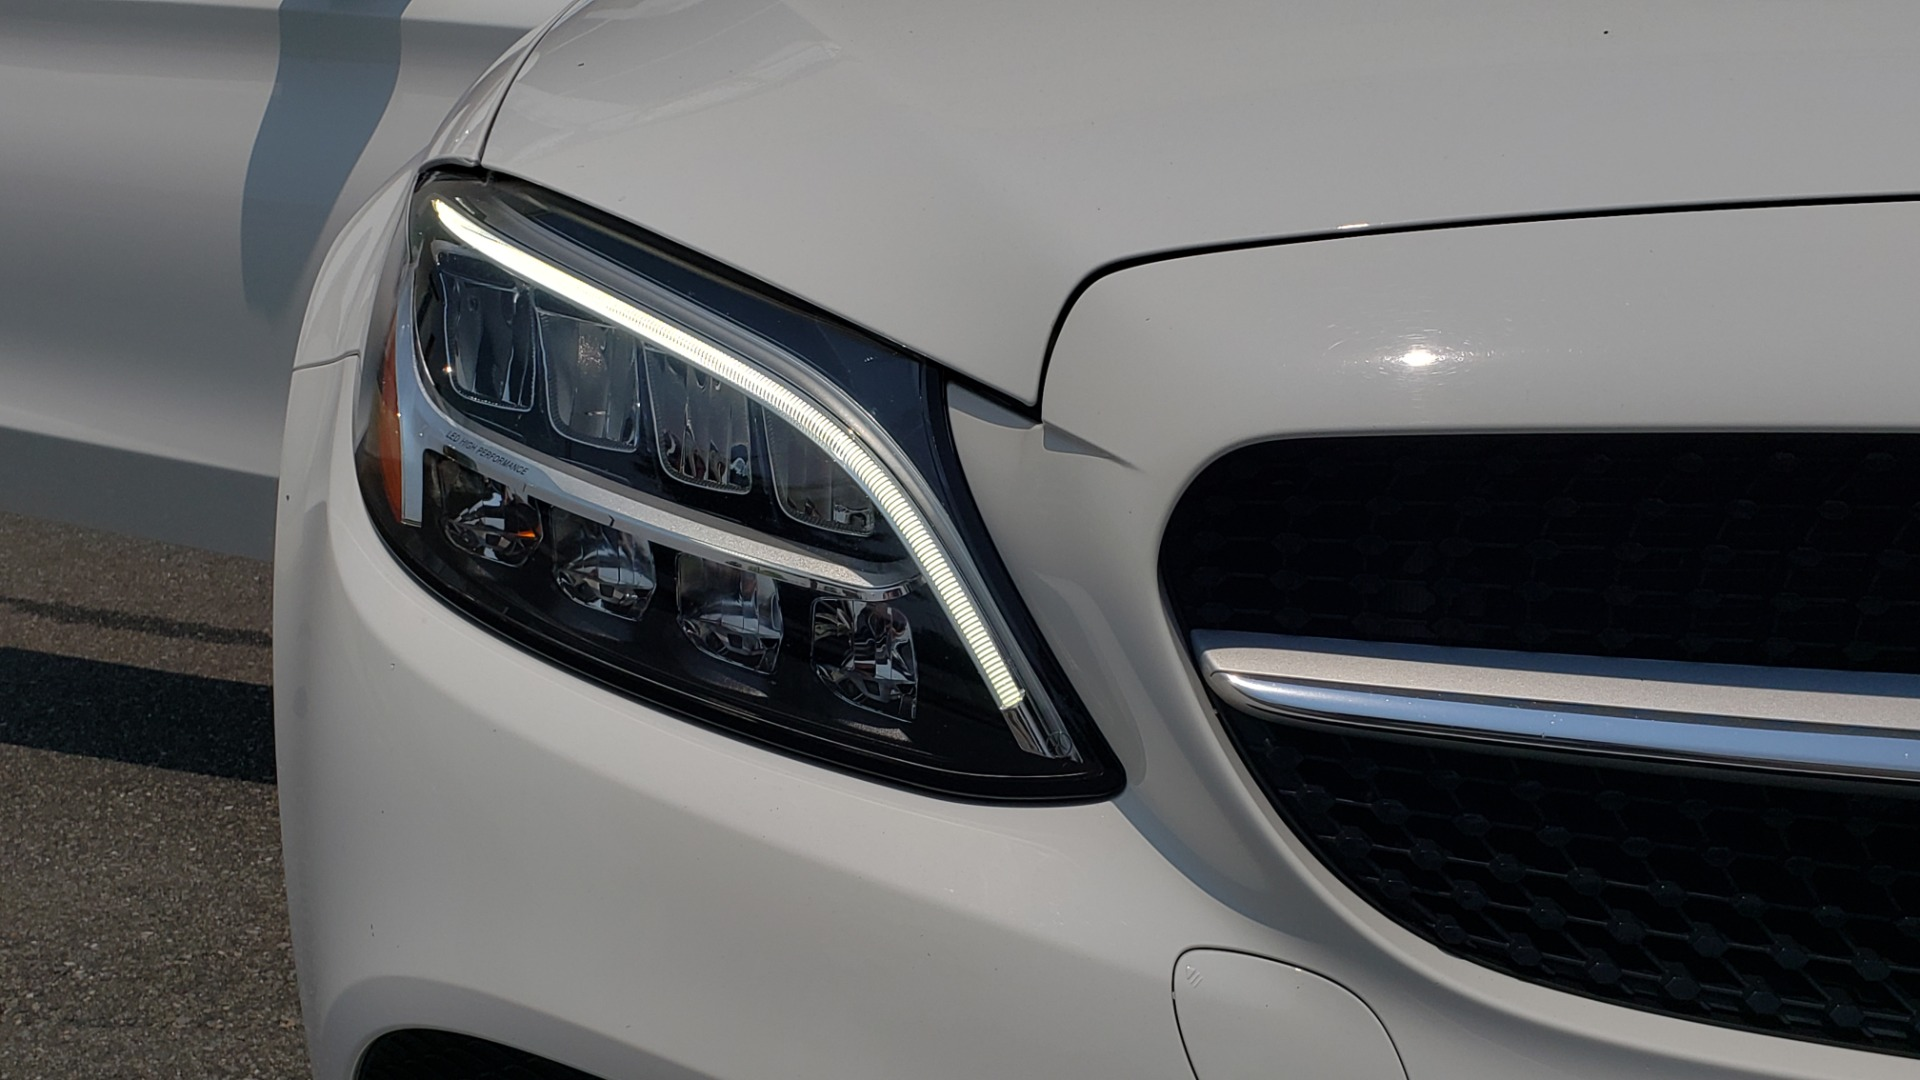 Used 2019 Mercedes-Benz C-CLASS C 300 CABRIOLET 2.0L / AUTO / NAV / HD RADIO / REARVIEW for sale $46,995 at Formula Imports in Charlotte NC 28227 25